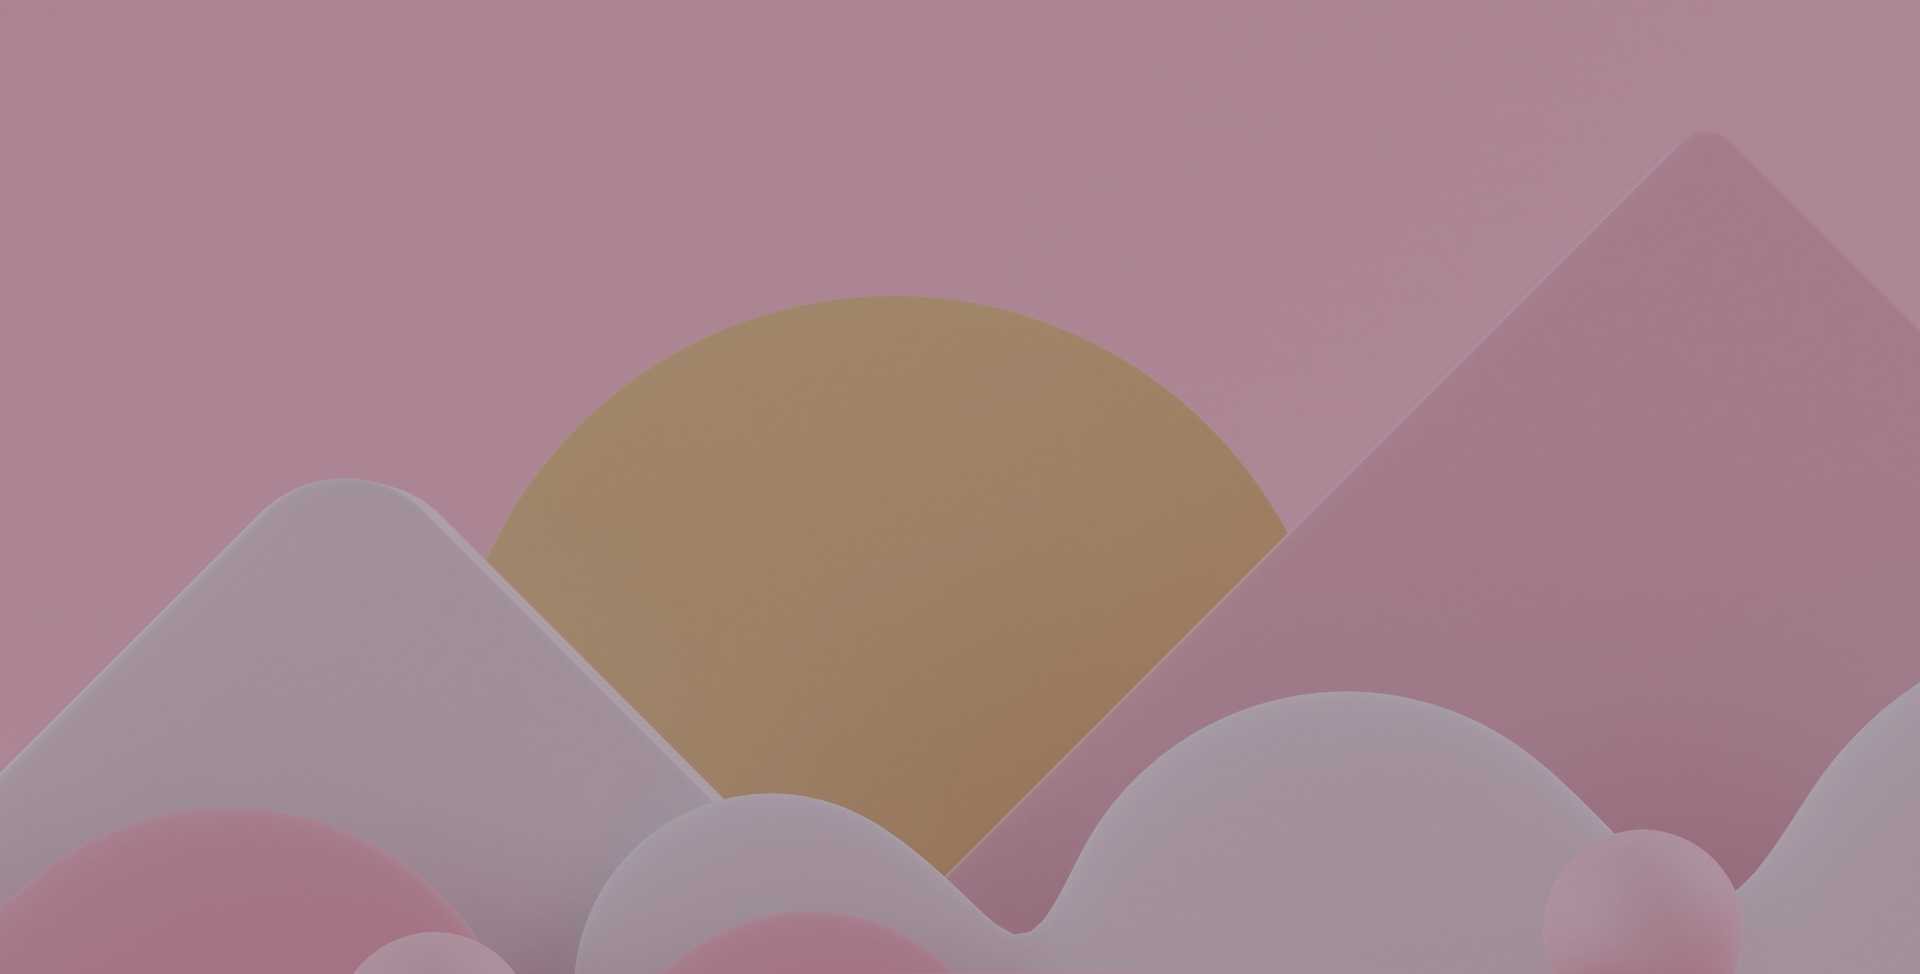 Abstract rendering of pink and white mountains against the backdrop of a pink sky with a large yellow sun, representing health and wellbeing